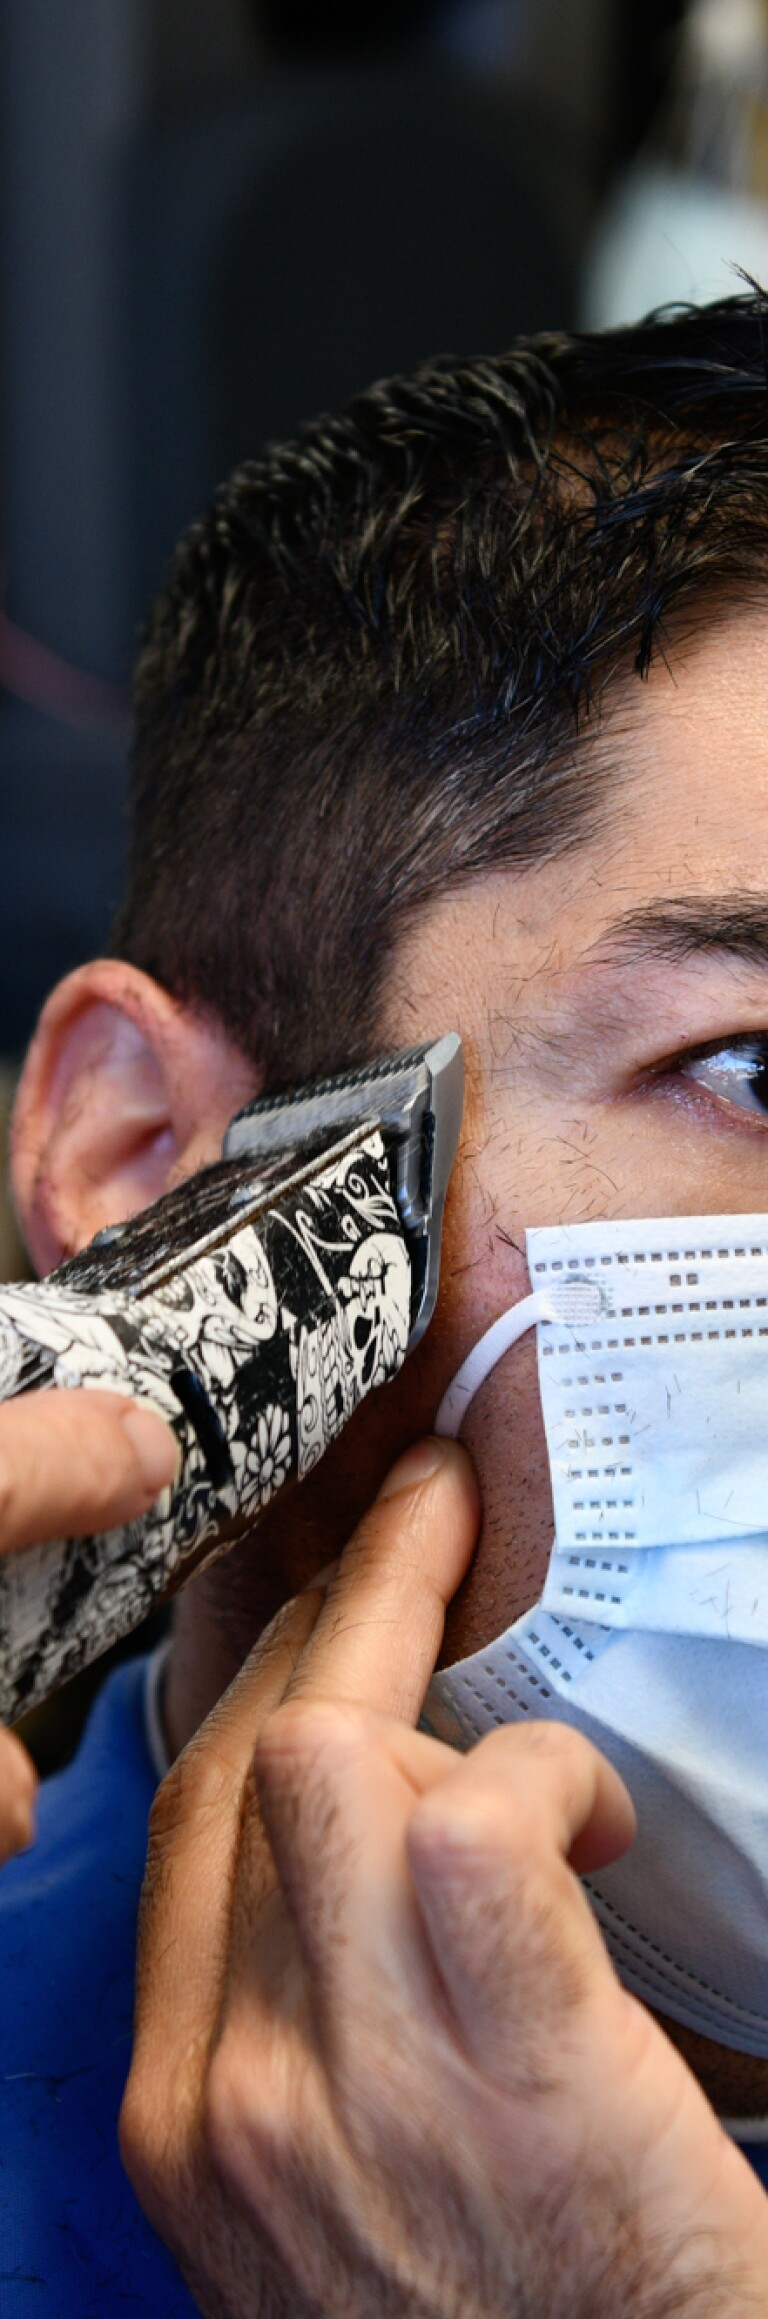 Carlos Hernandez holds his face mask while getting a haircut during the pandemic.